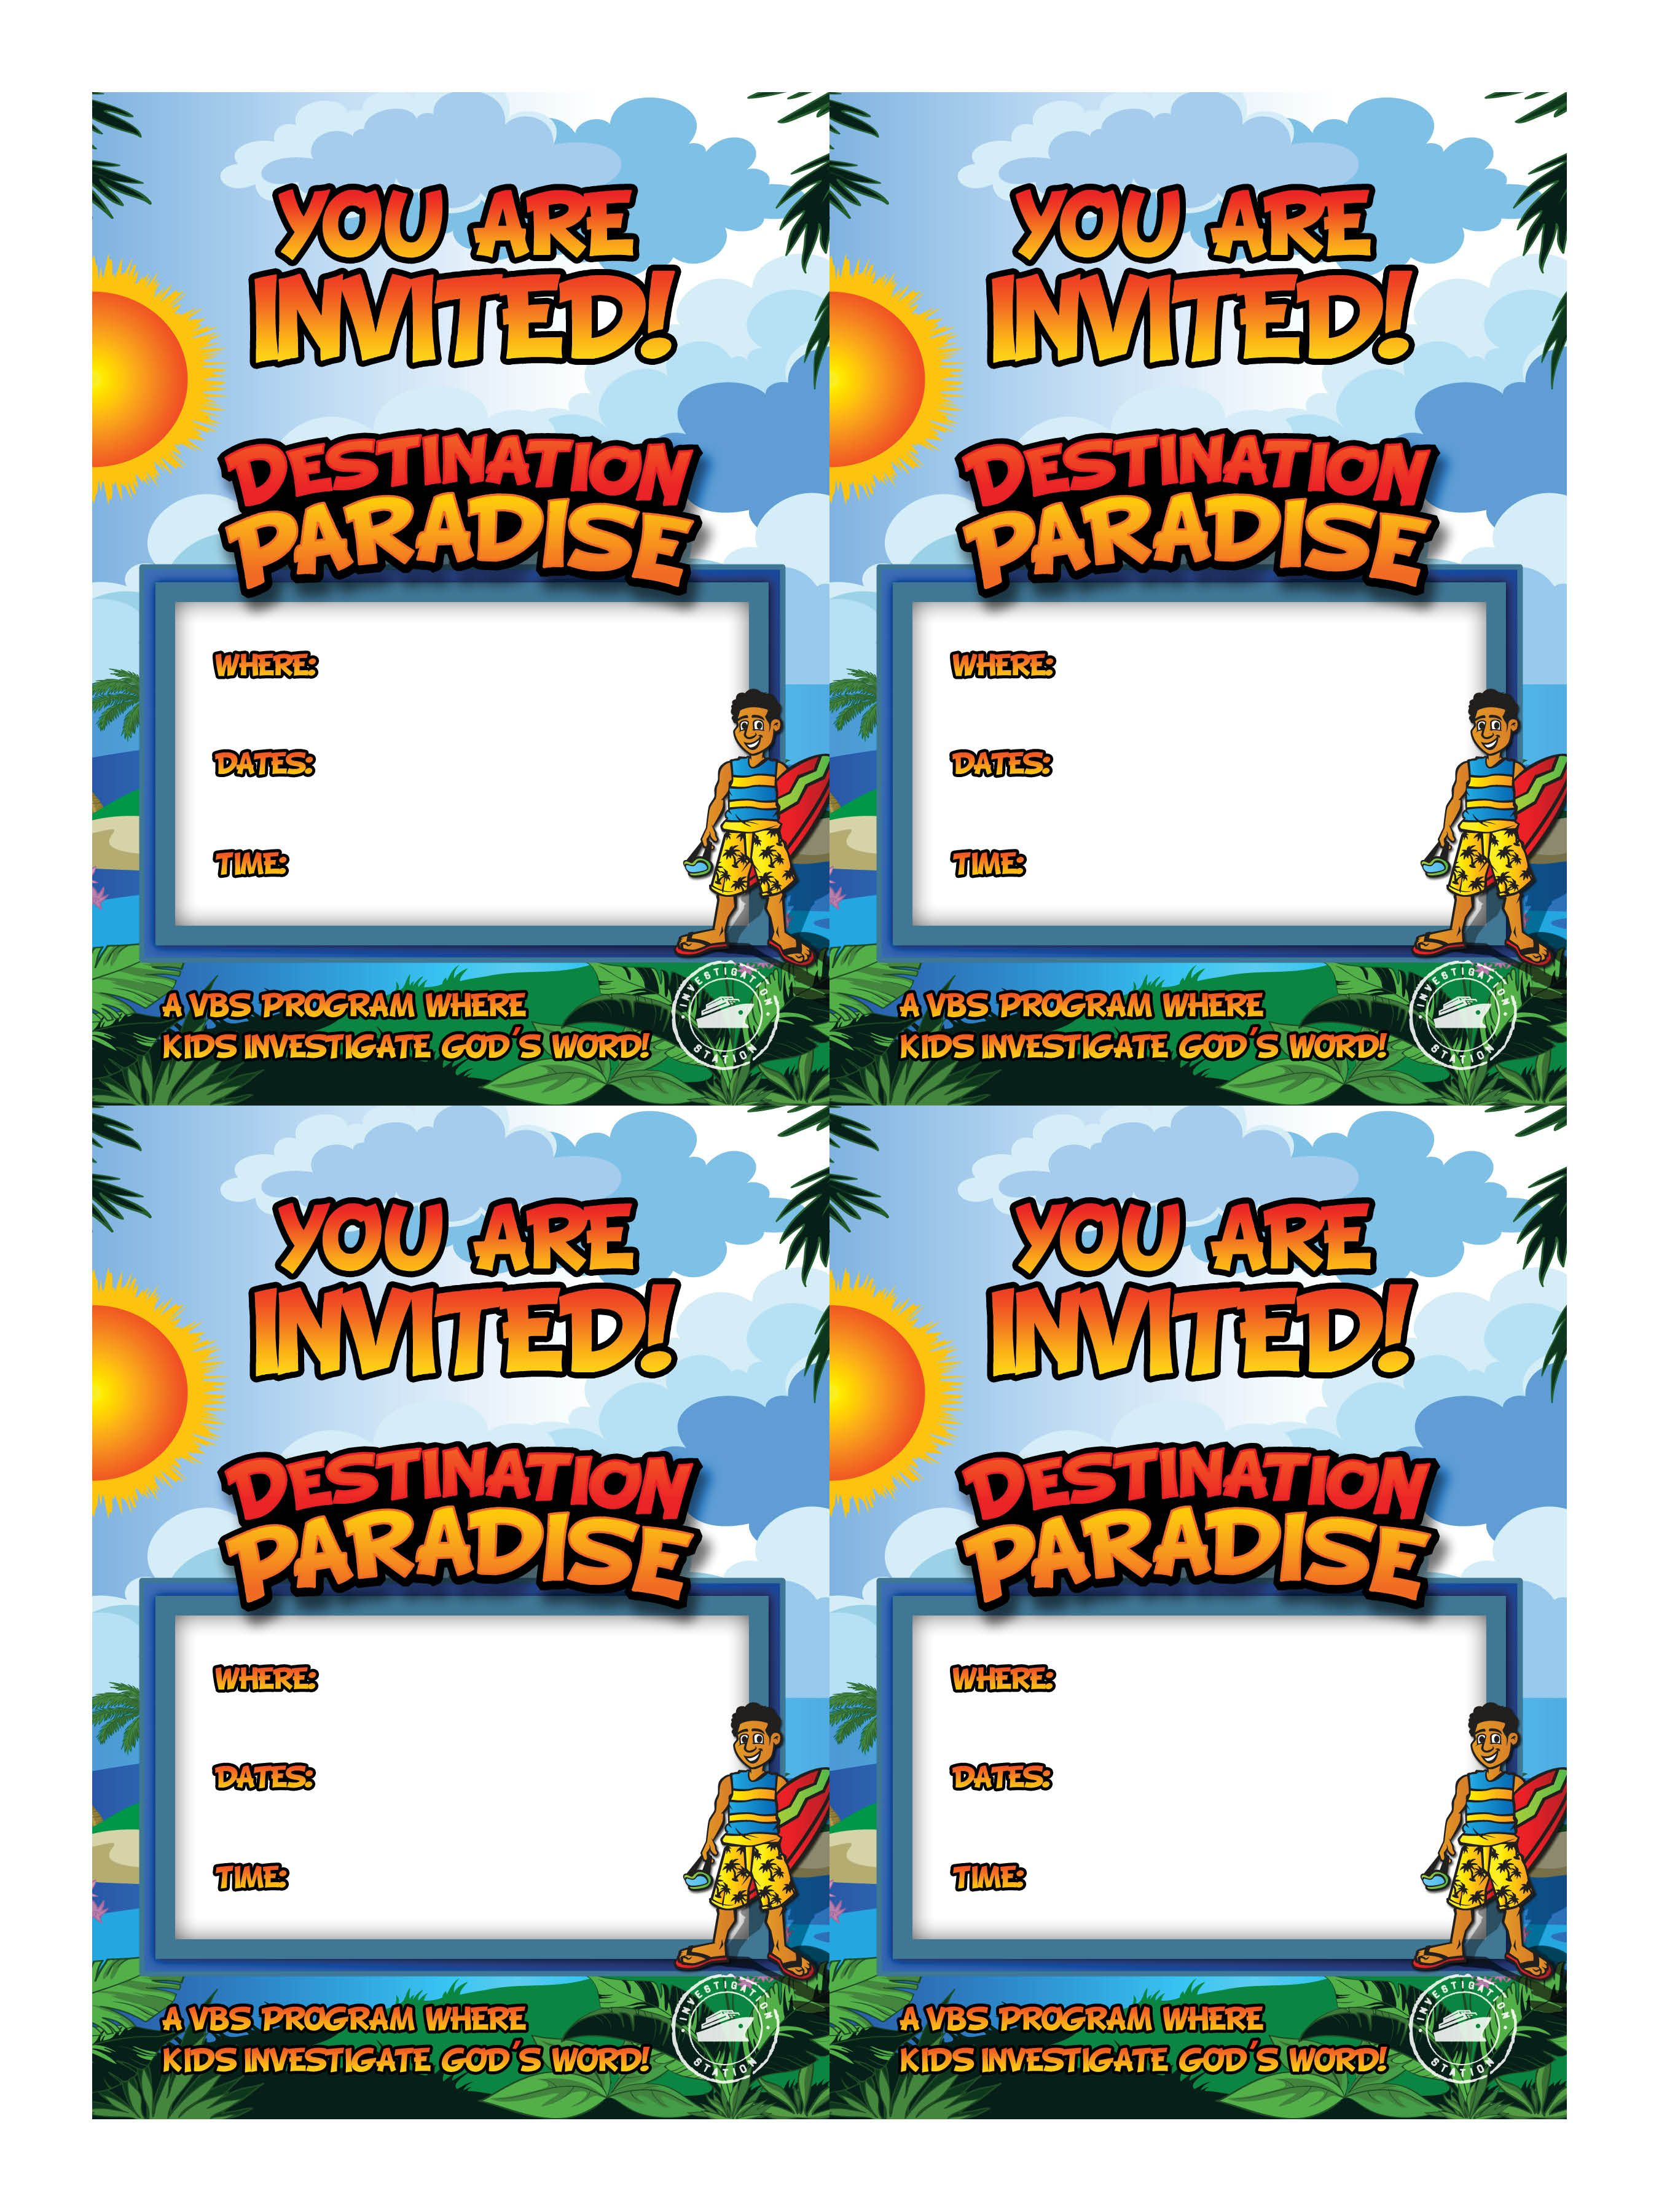 letter to mom vbs invitation postcards four up vbs 2015 1443